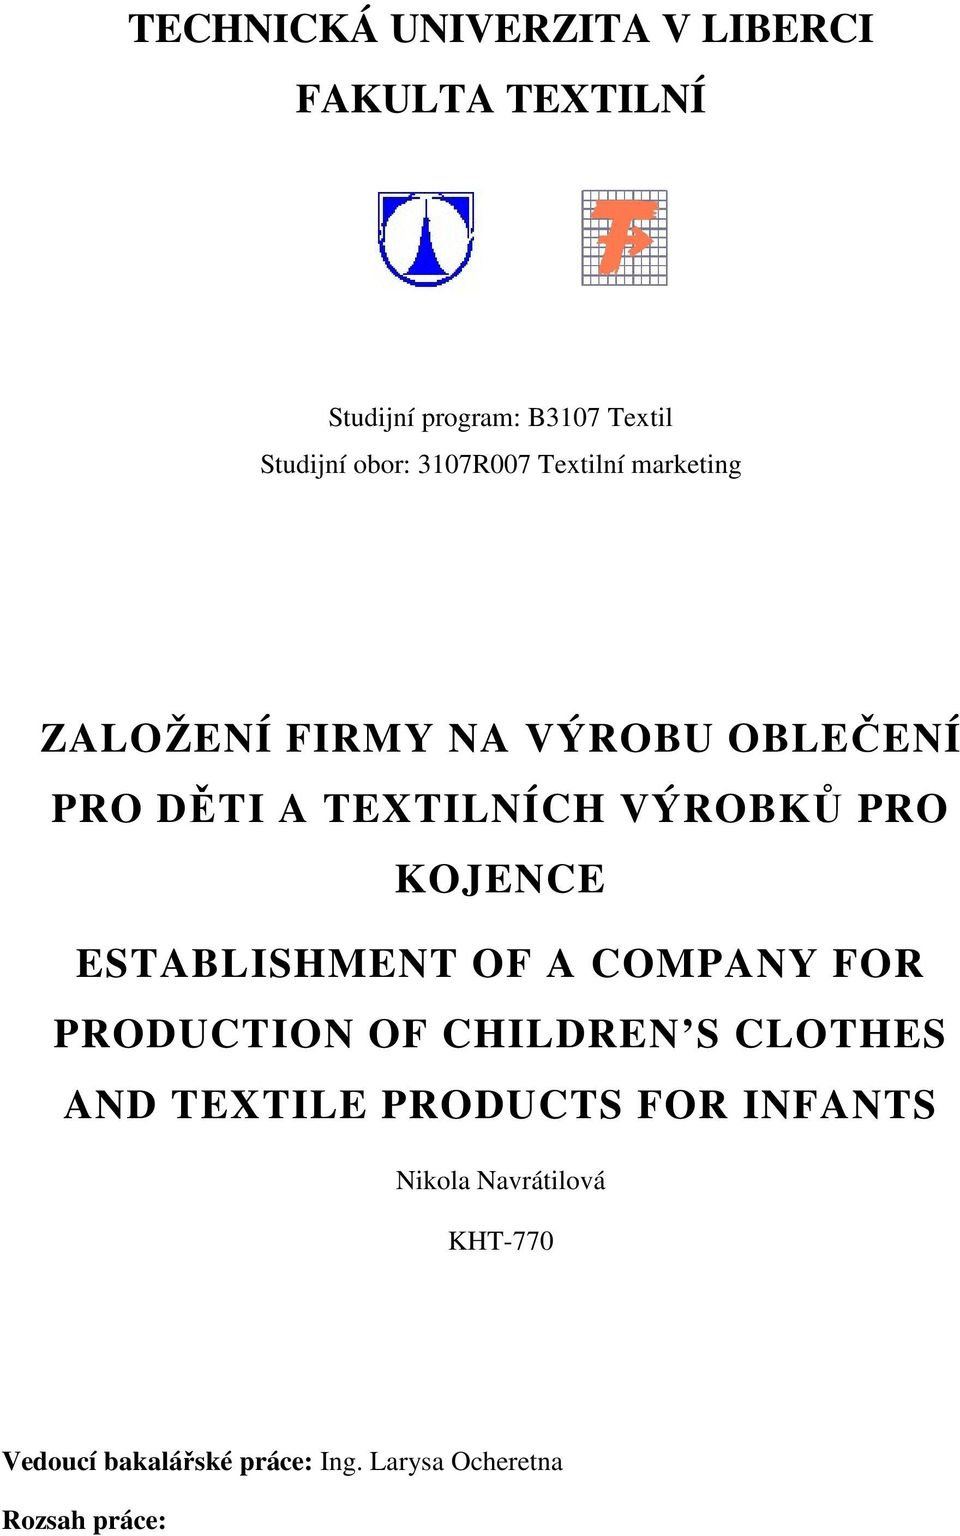 KOJENCE ESTABLISHMENT OF A COMPANY FOR PRODUCTION OF CHILDREN S CLOTHES AND TEXTILE PRODUCTS